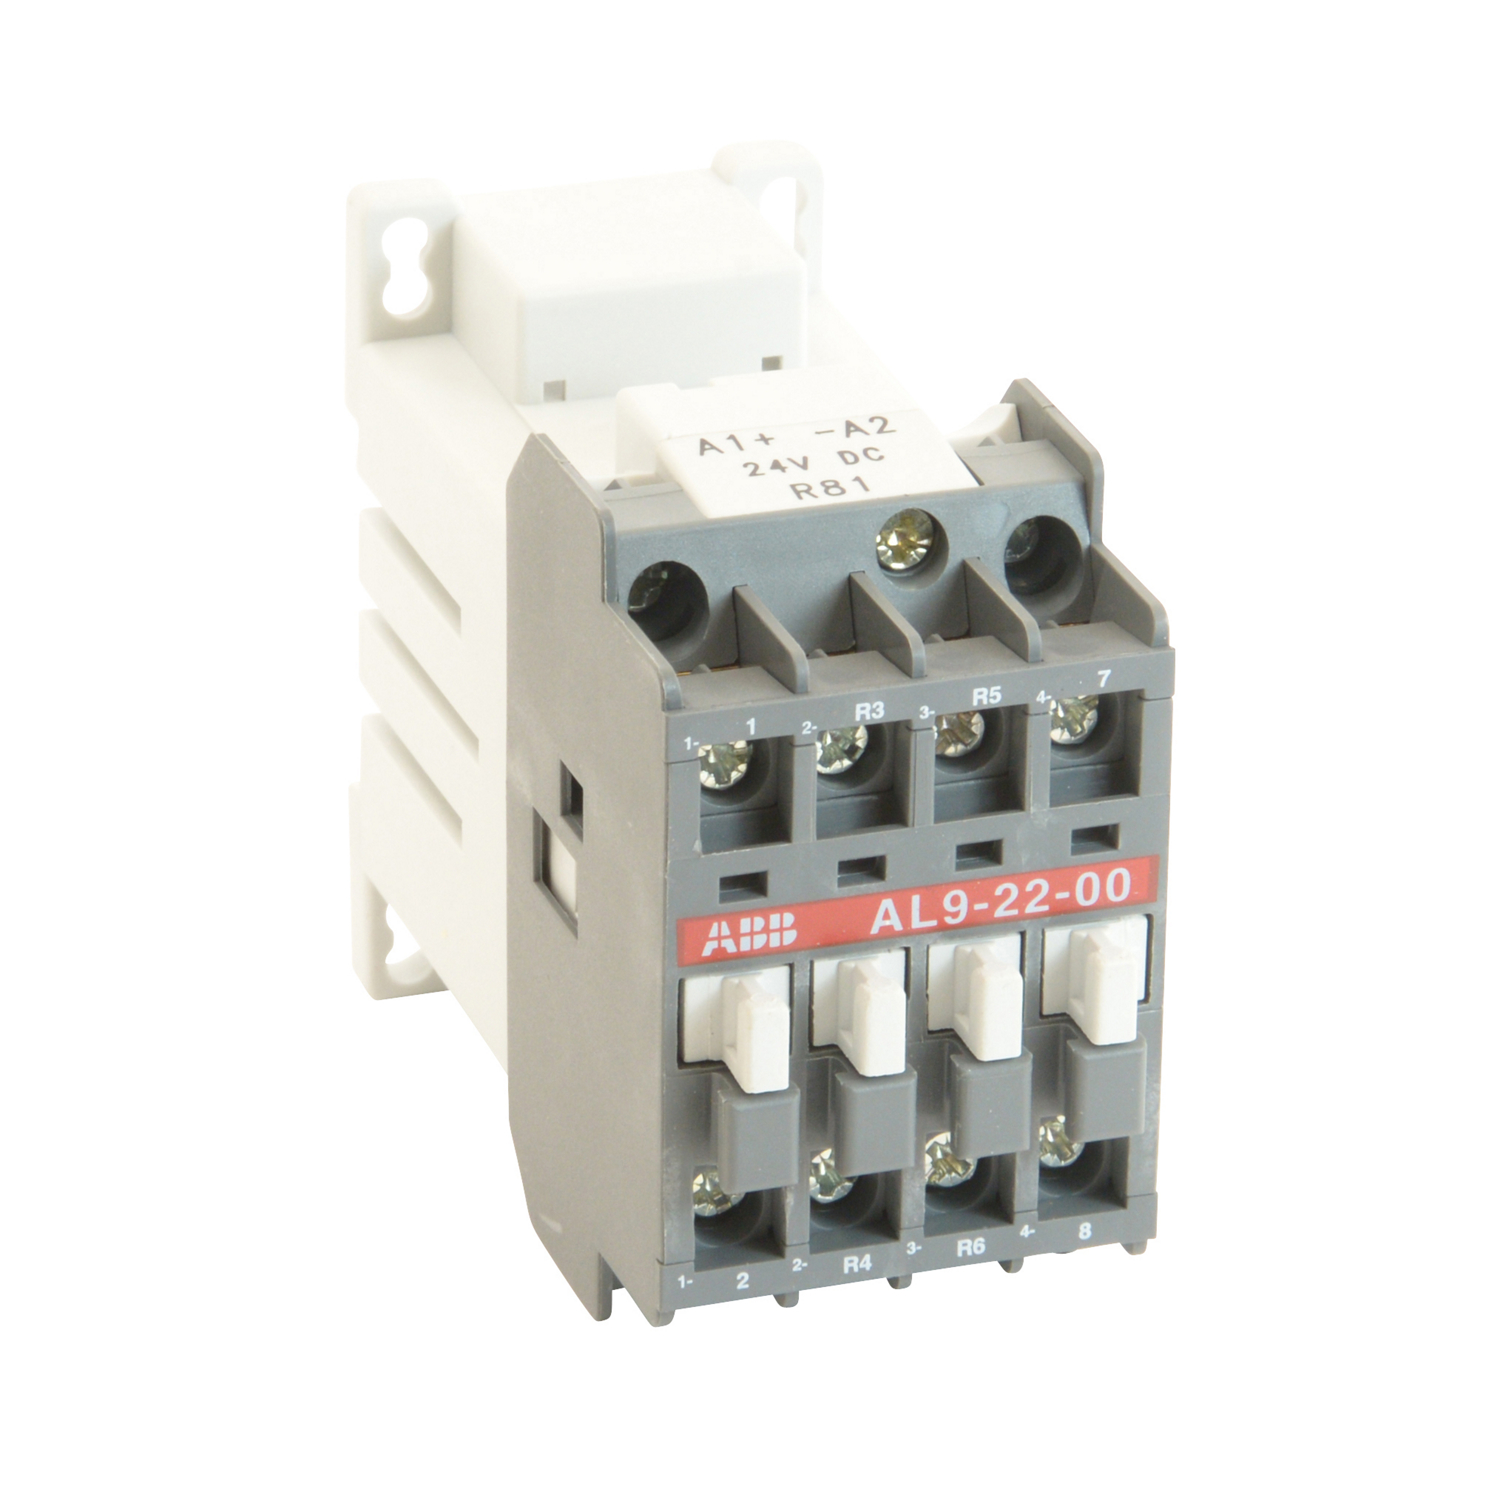 Abb A5030 Contactor Wiring Diagrams Electrical Motor Starter Diagram Industrial Control Controls Contactors Standard